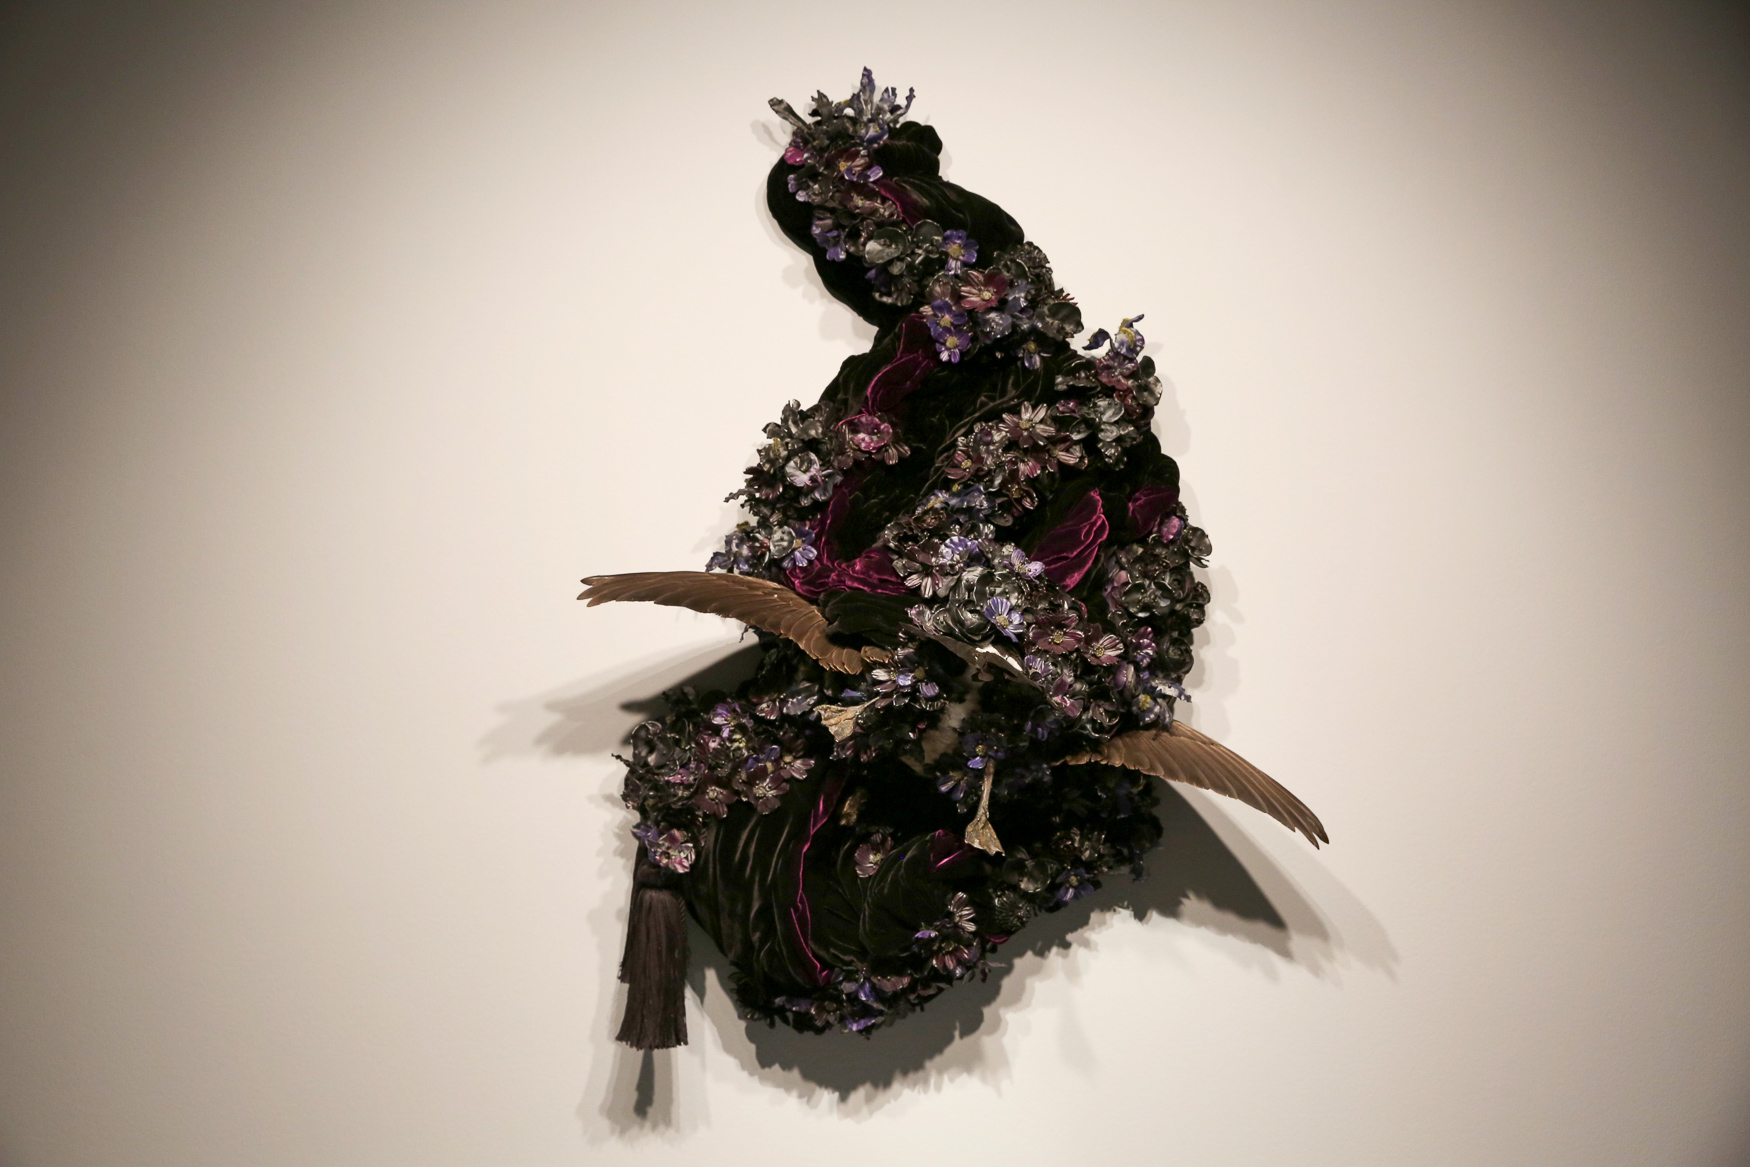 The National Museum of Women in the Arts currently has some mighty exhibitions, each of which are thought-provoking. Tickets are $10, but they also offer a free-with-admission discussion about the art at 2 p.m. most days. (Amanda Andrade-Rhoades/DC Refined)